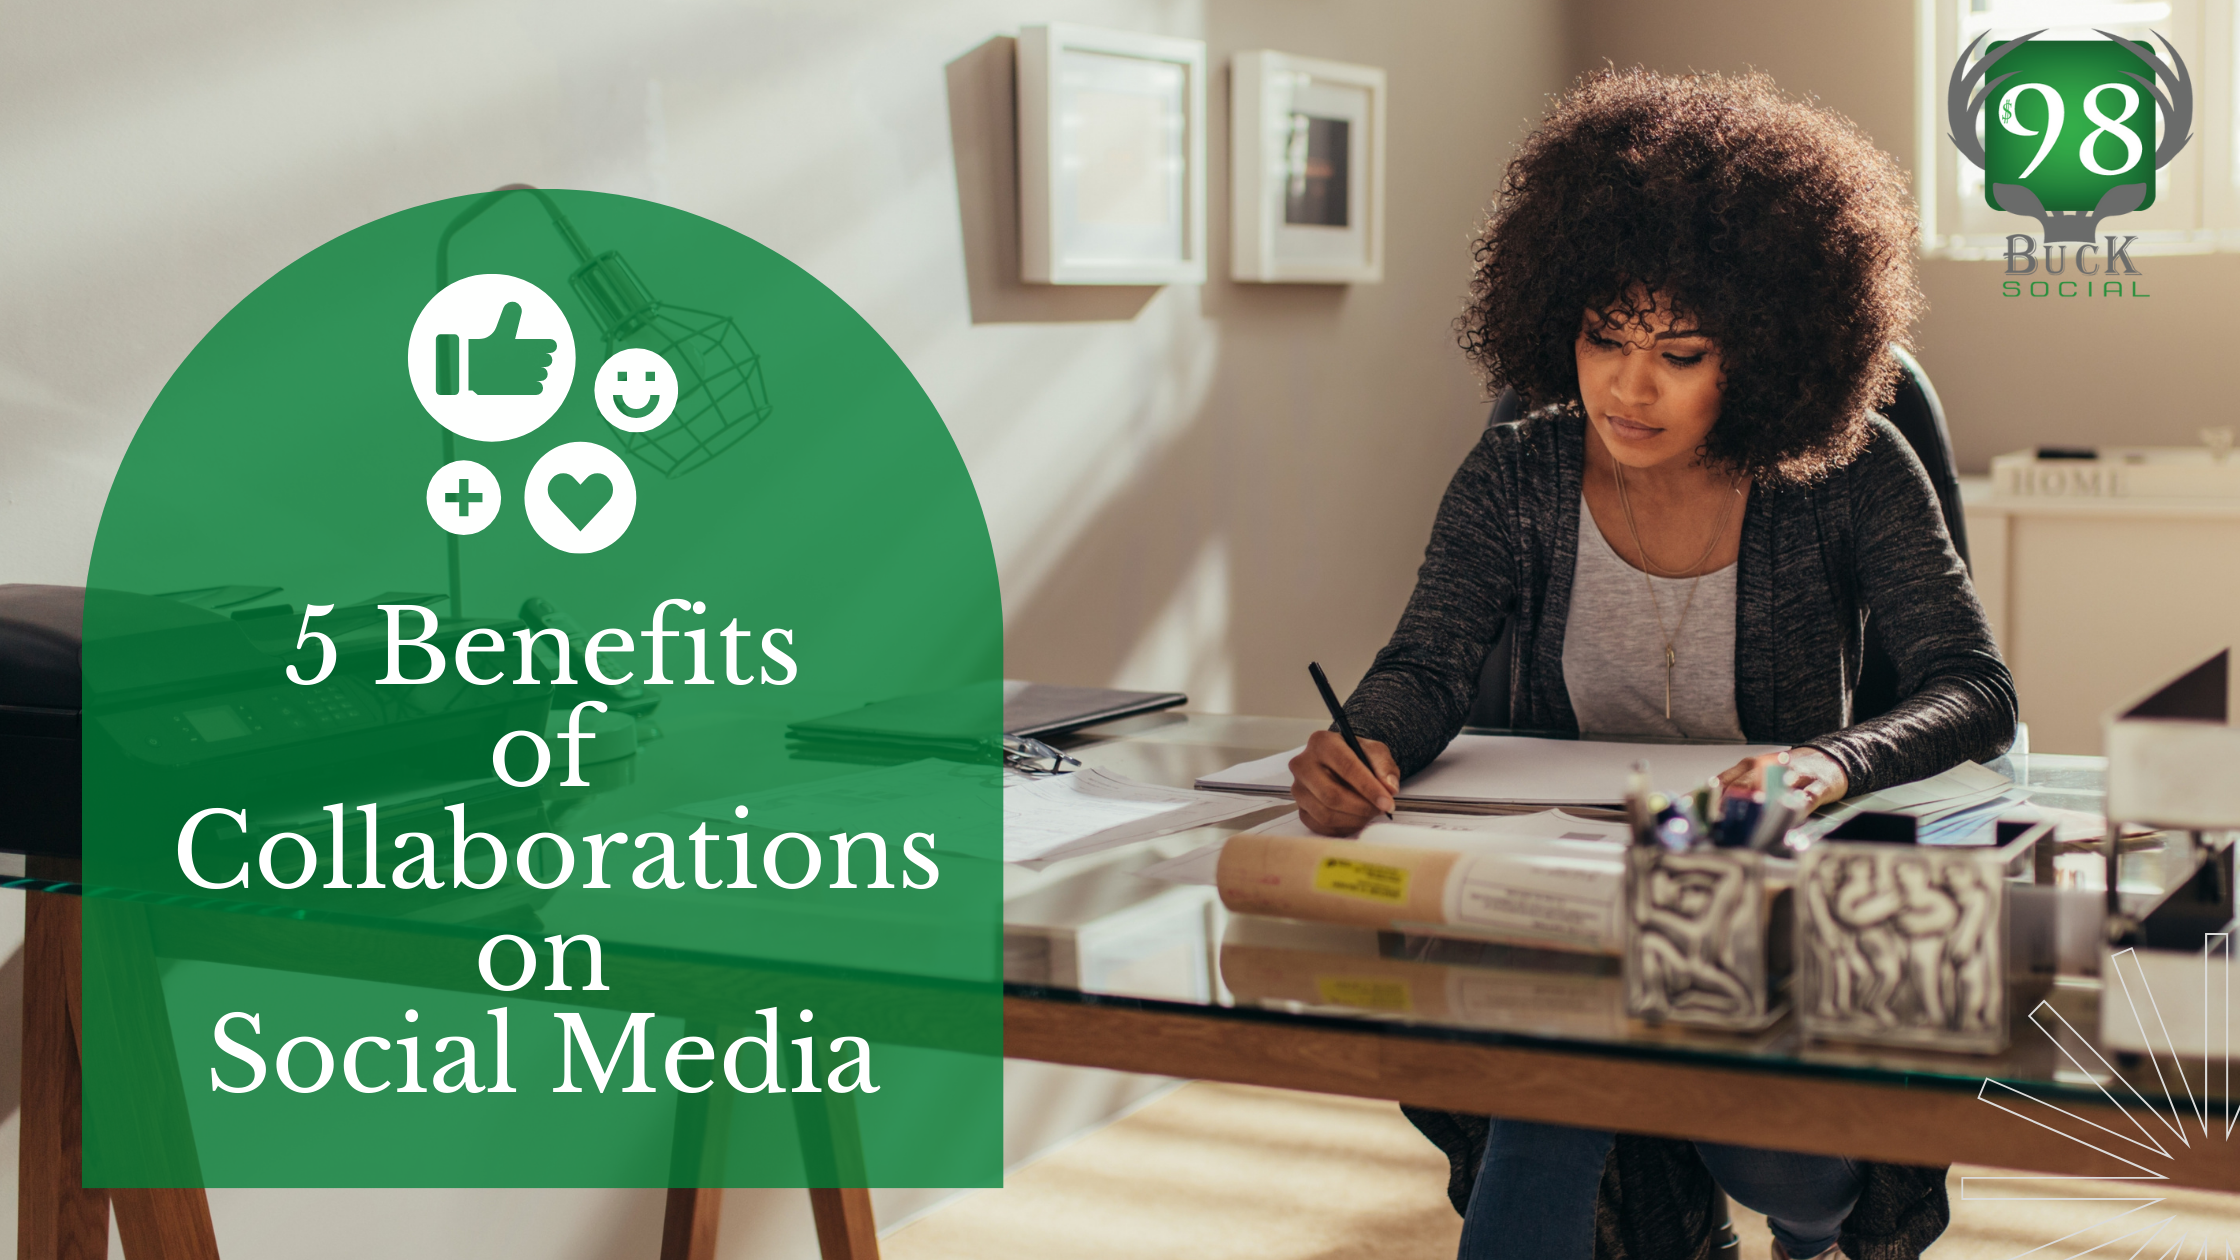 5 Benefits of Collaborations on Social Media